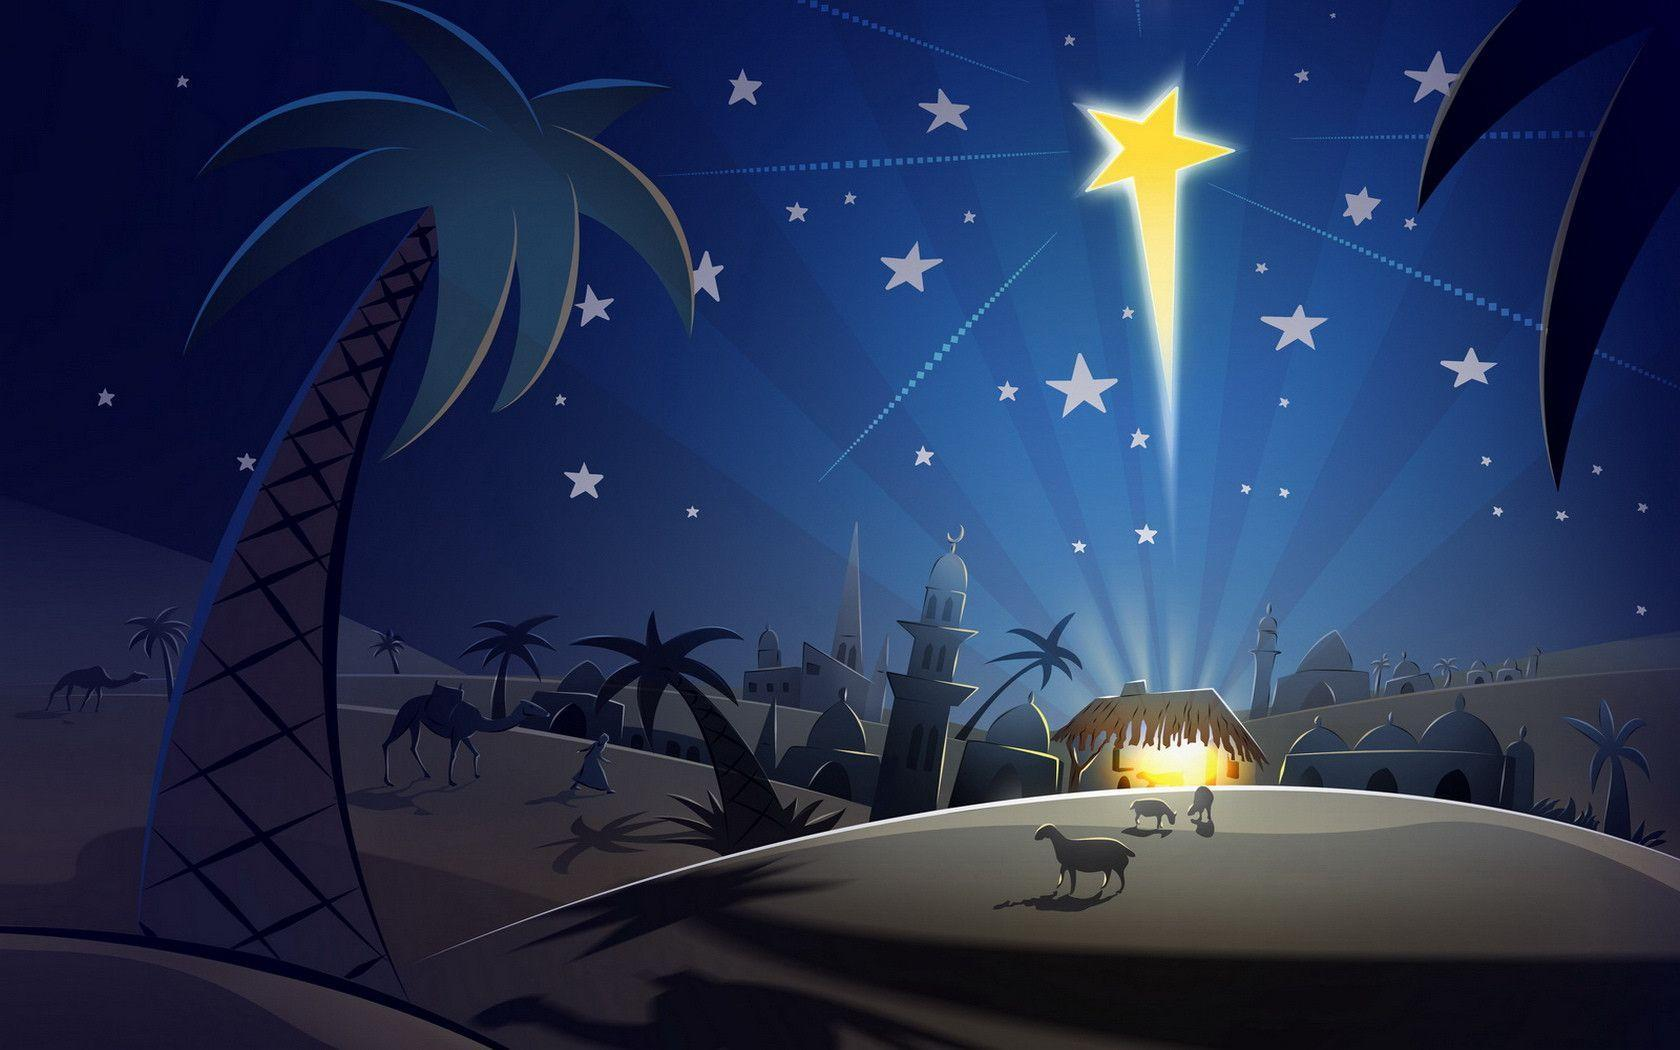 Christmas Nativity Wallpaper Desktop